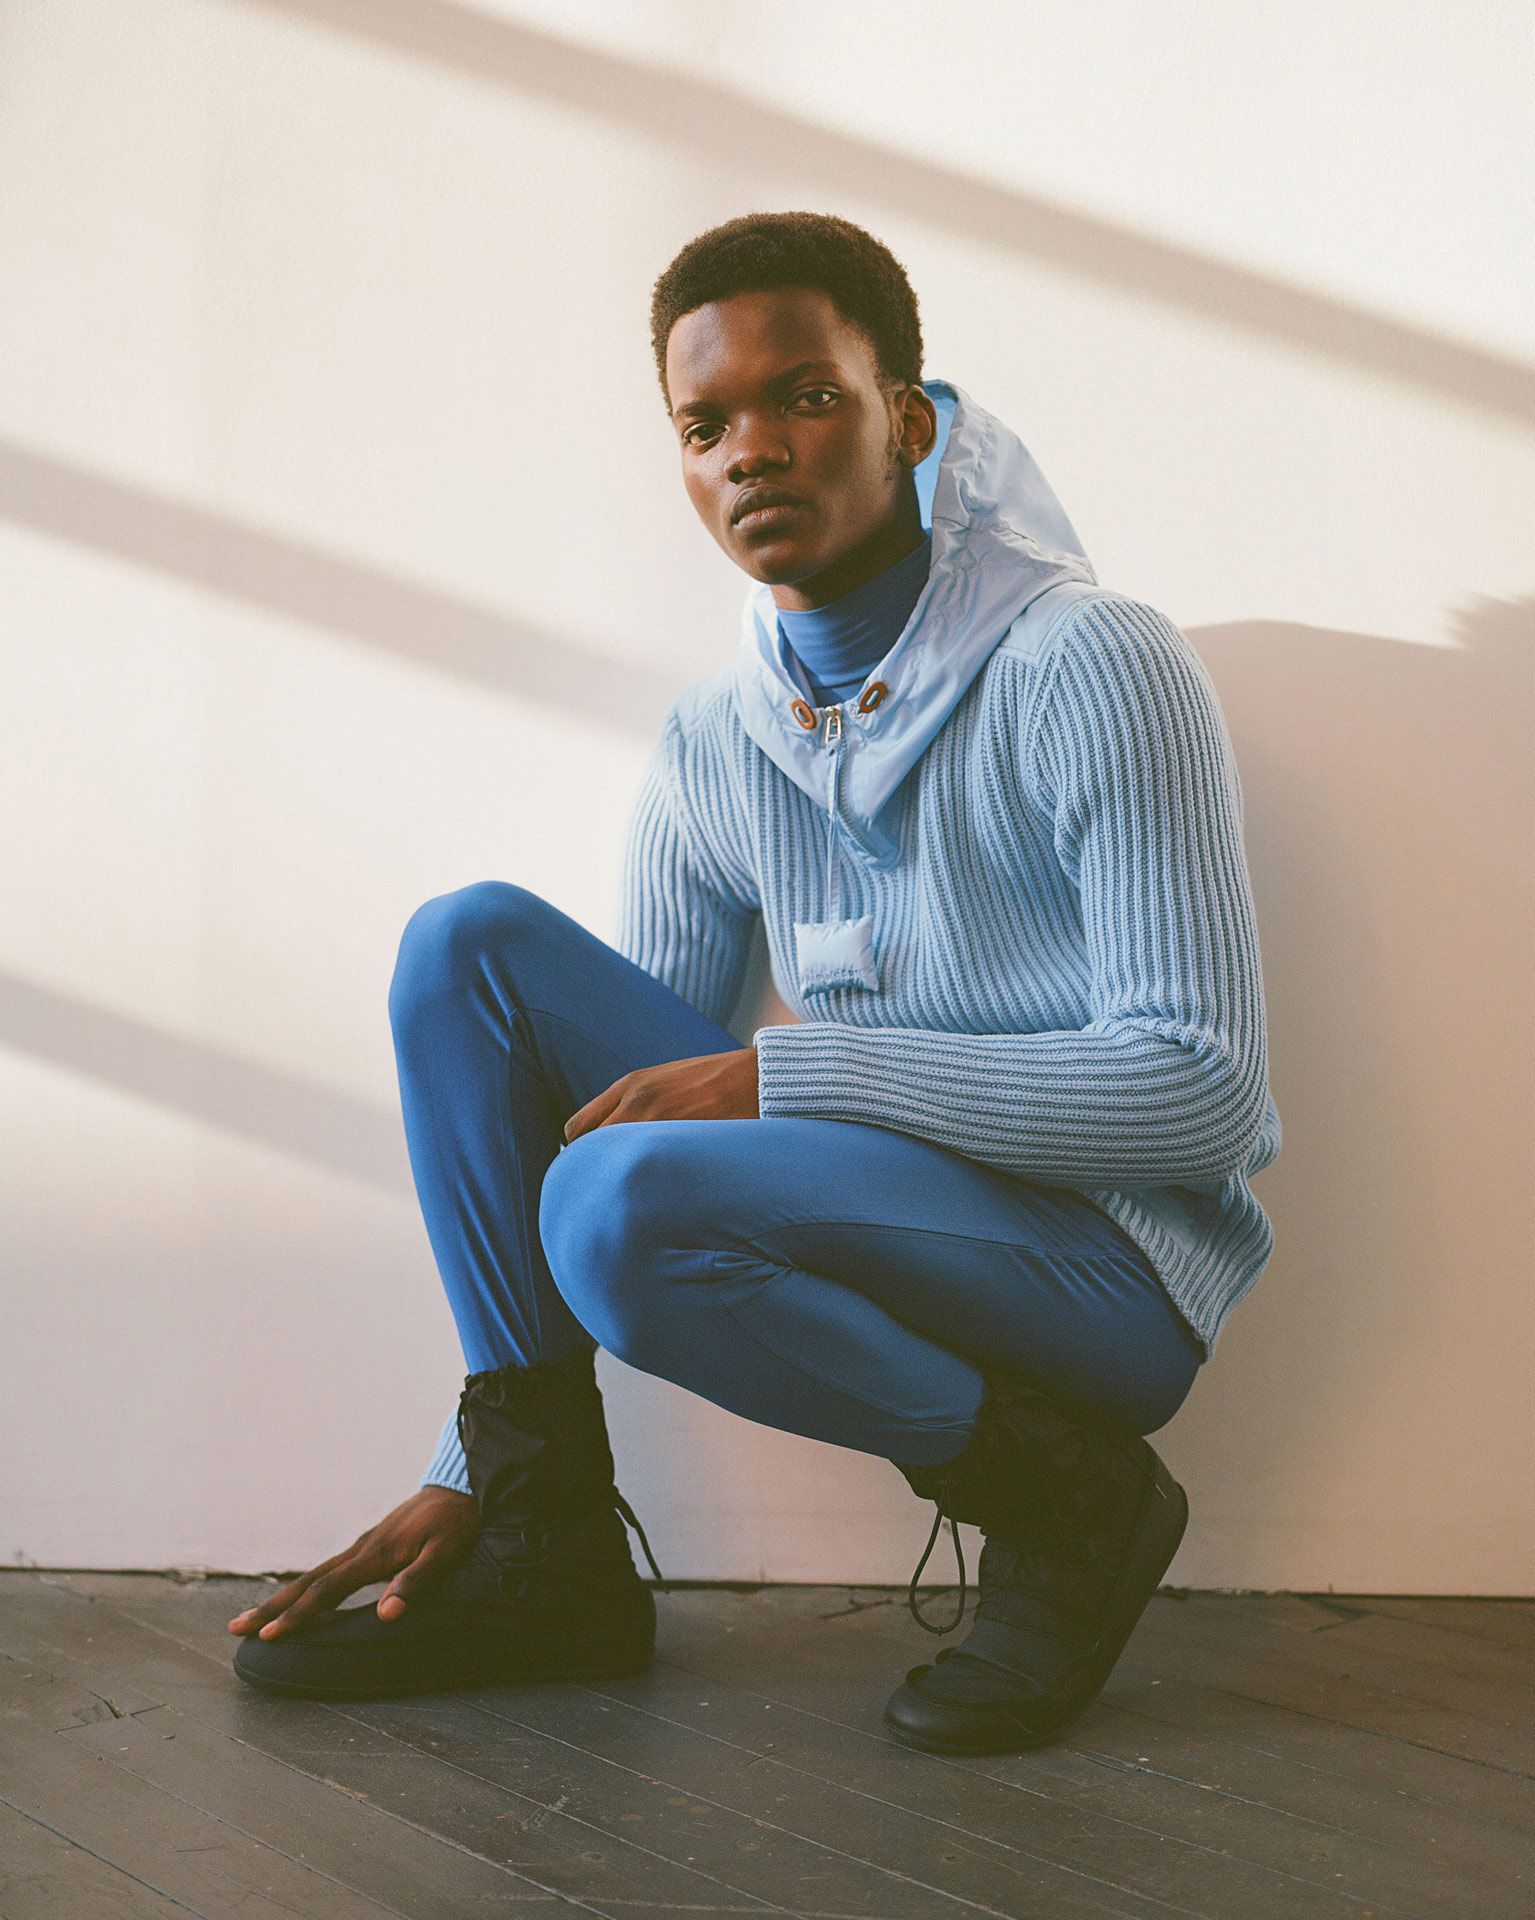 black male model crouching on the ground looking at camera wearing blue overalls and powder blue sweater photographed by Oumayma B Tanfous for Moncler as a story for Document Journal magazine